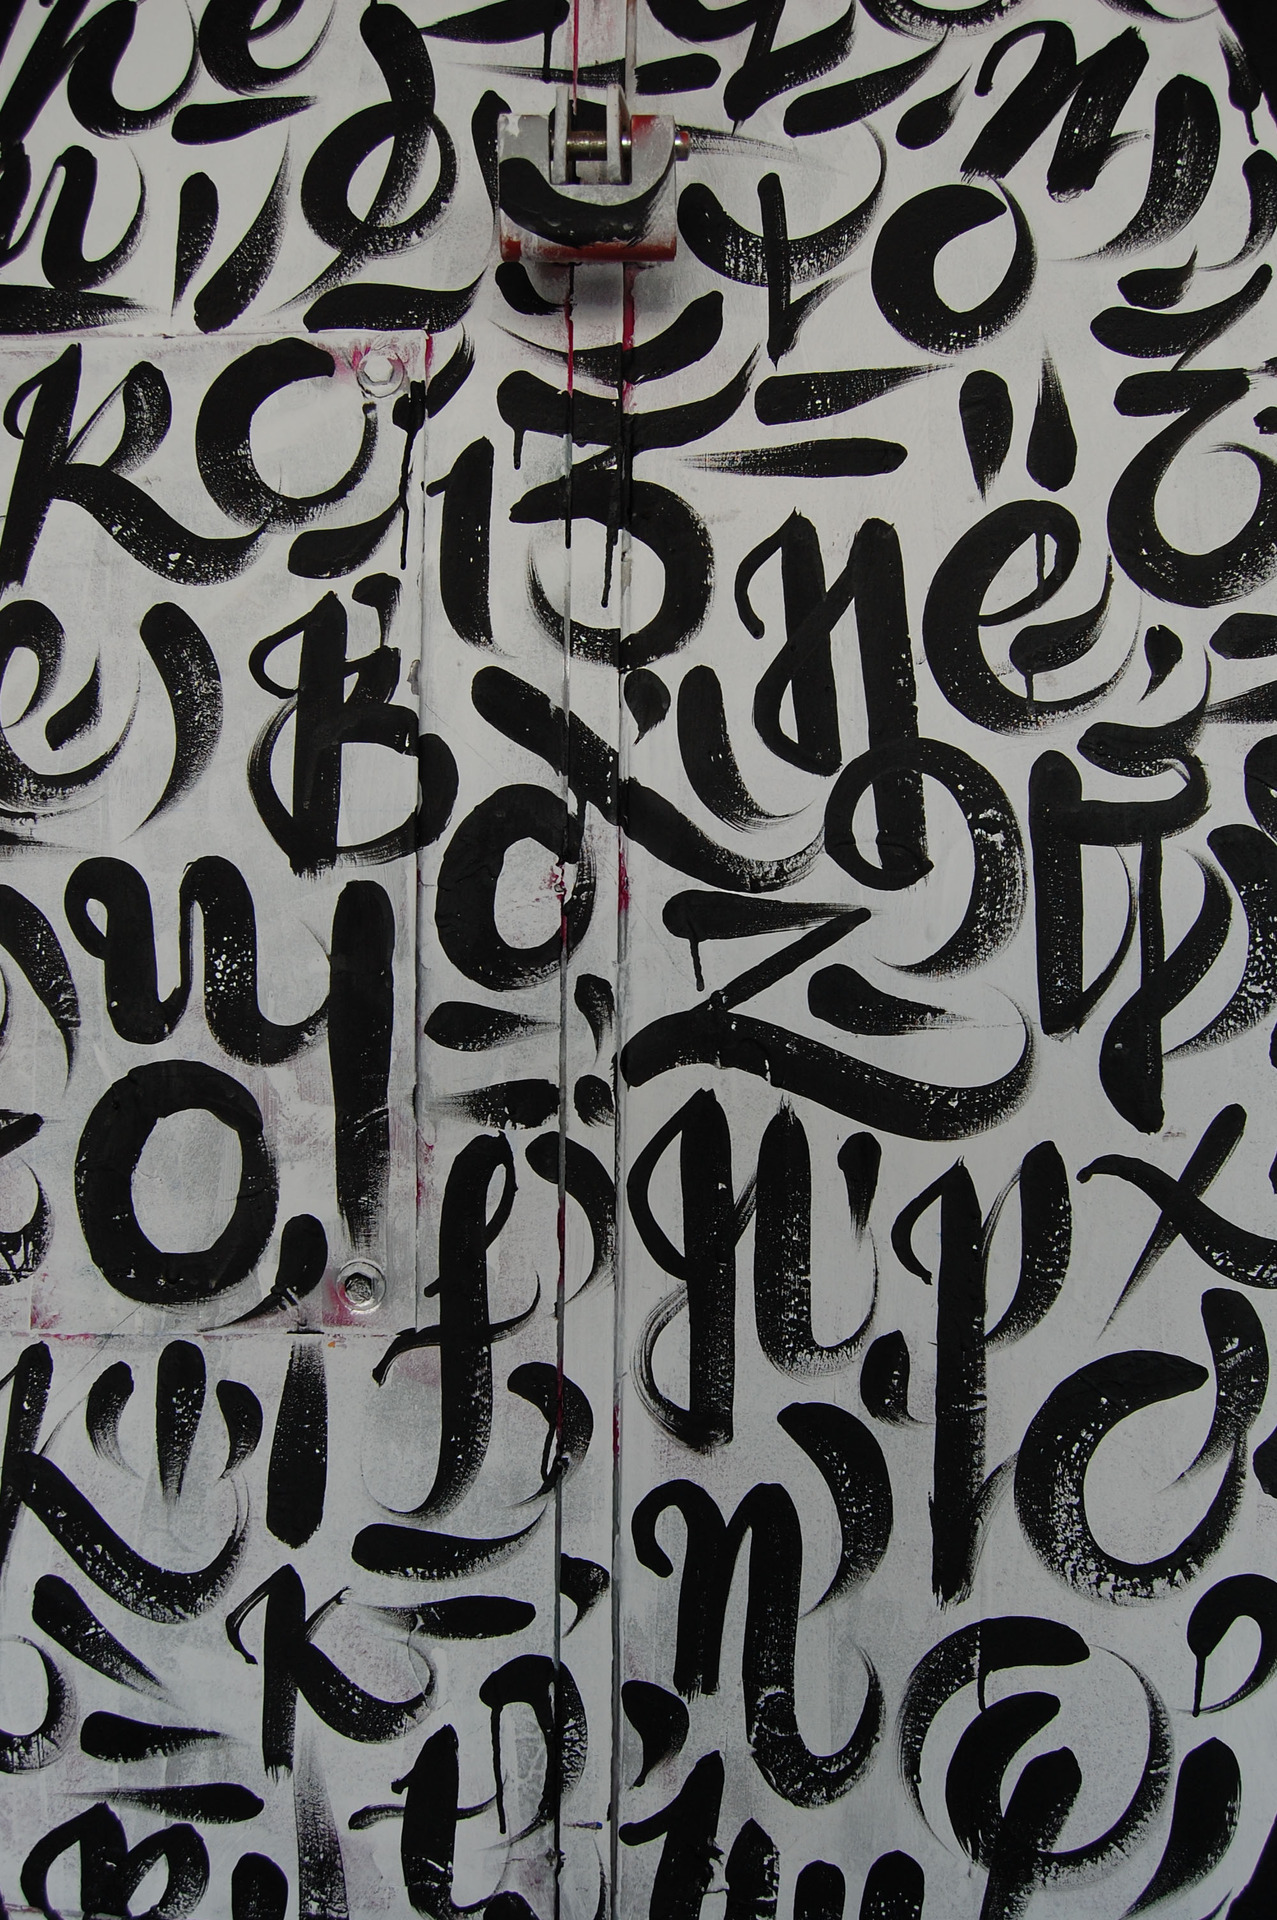 Calligraphi.ca - ~.||.~ - brush and acrylics on sheet metal - Greg Papagrigoriou